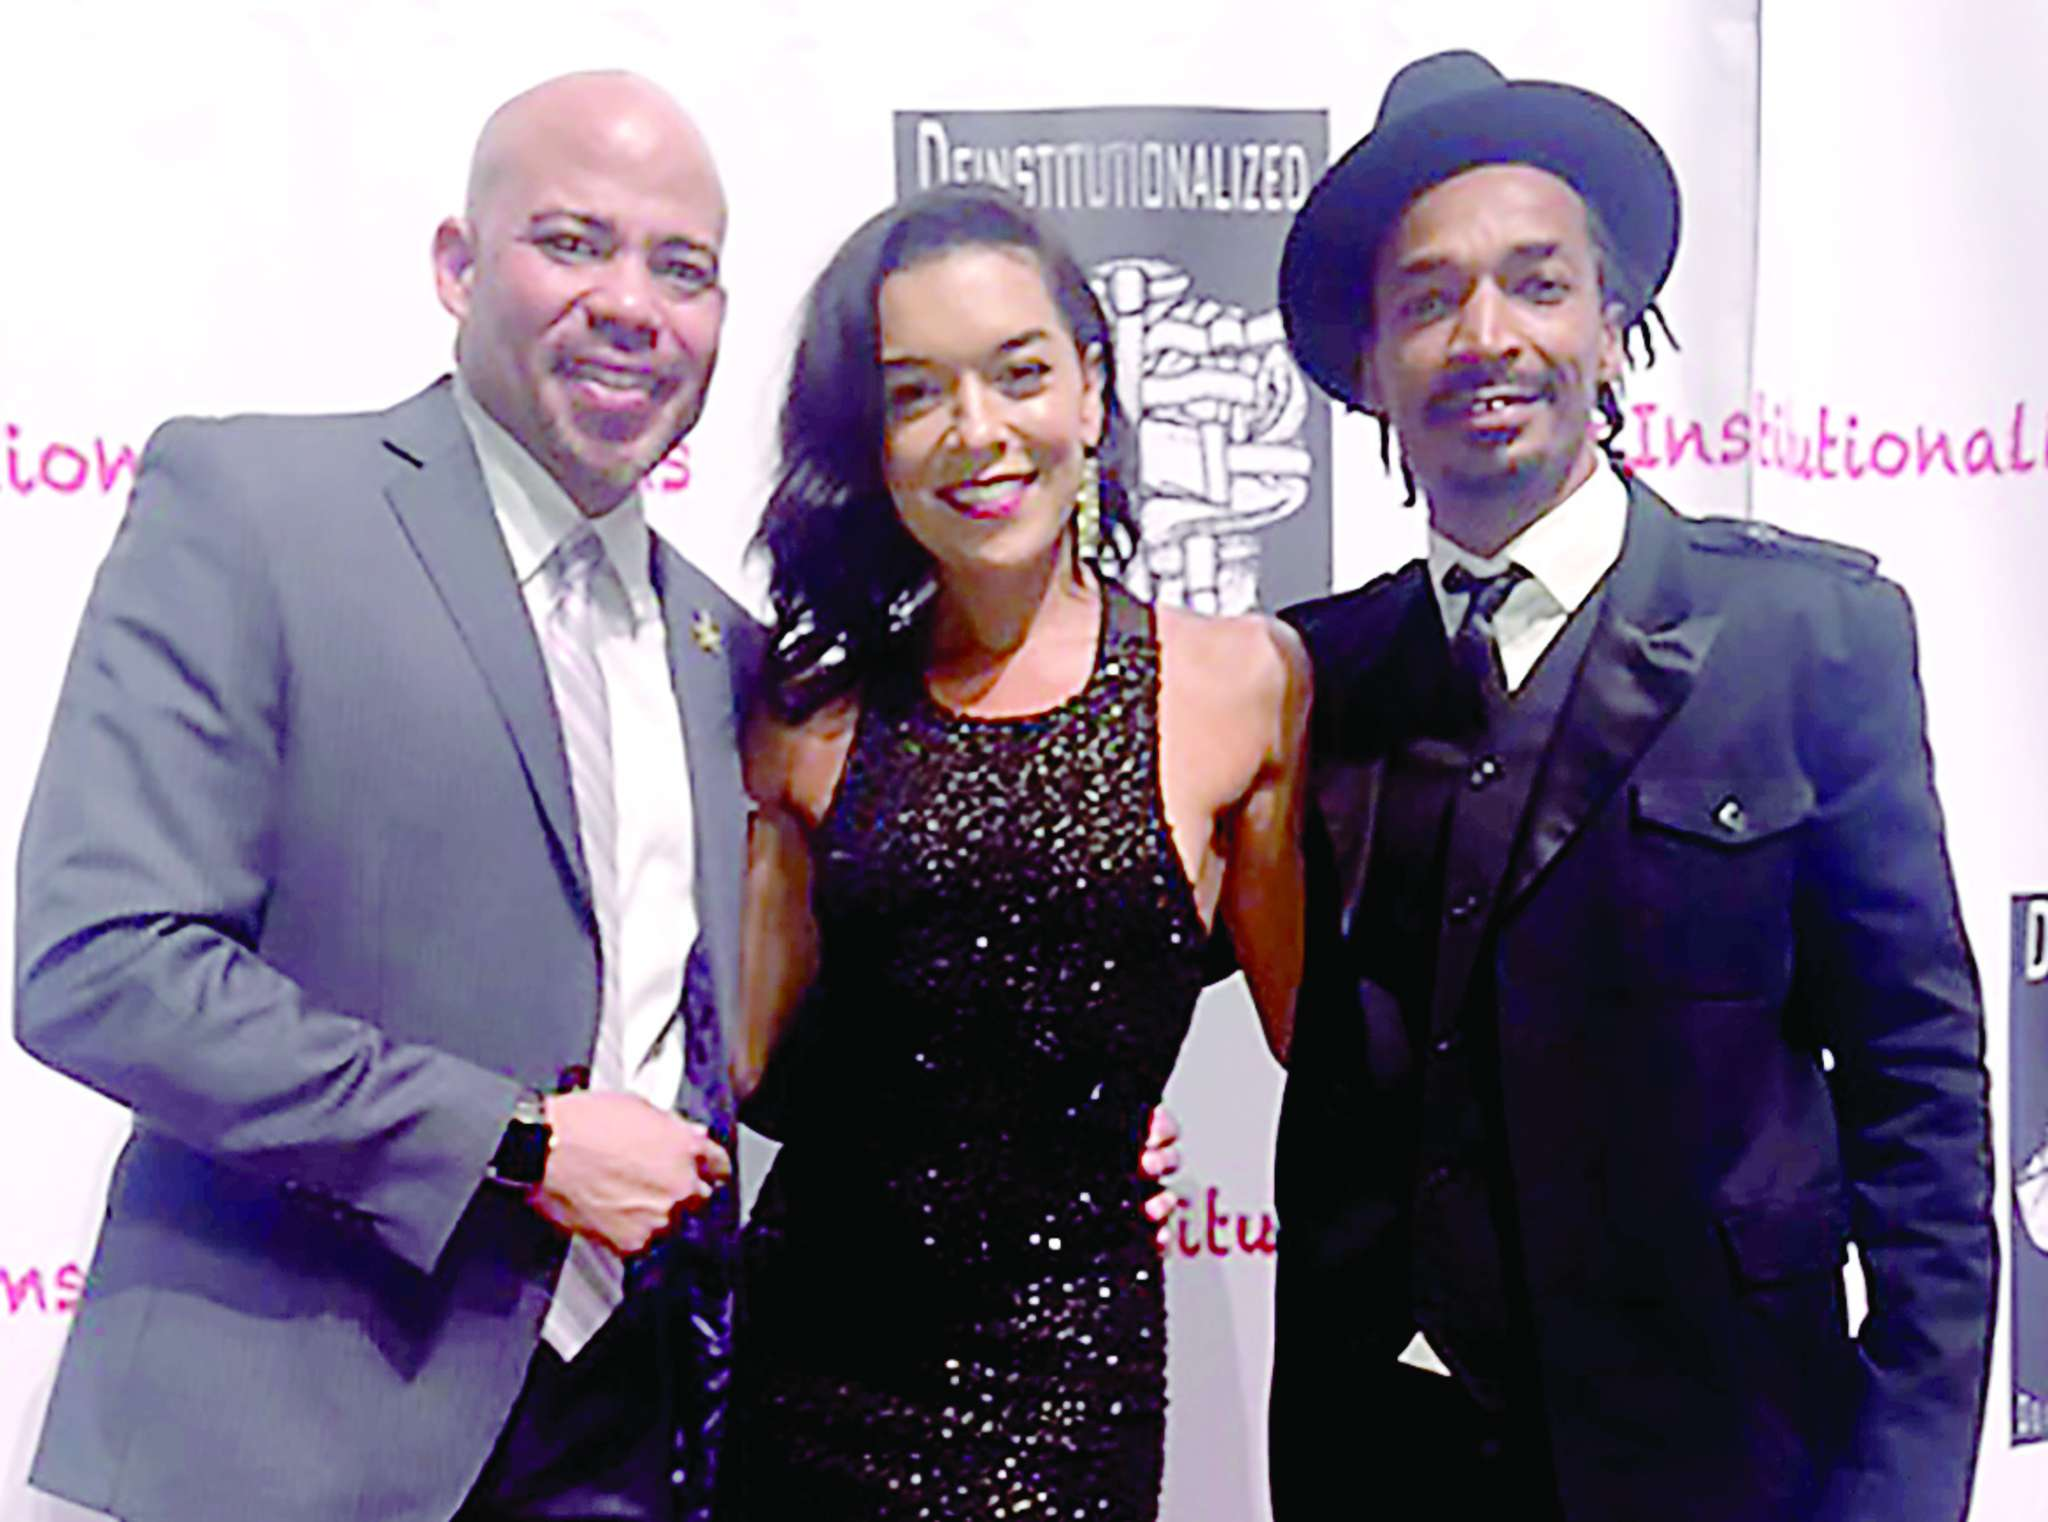 Philly native Gerald Webb (left) is the star and producer of A House Is Not a Home, which co-stars Diahnna Nicole Baxter and Eddie Steeples. The red-carpet premiere of the movie was Thursday night.